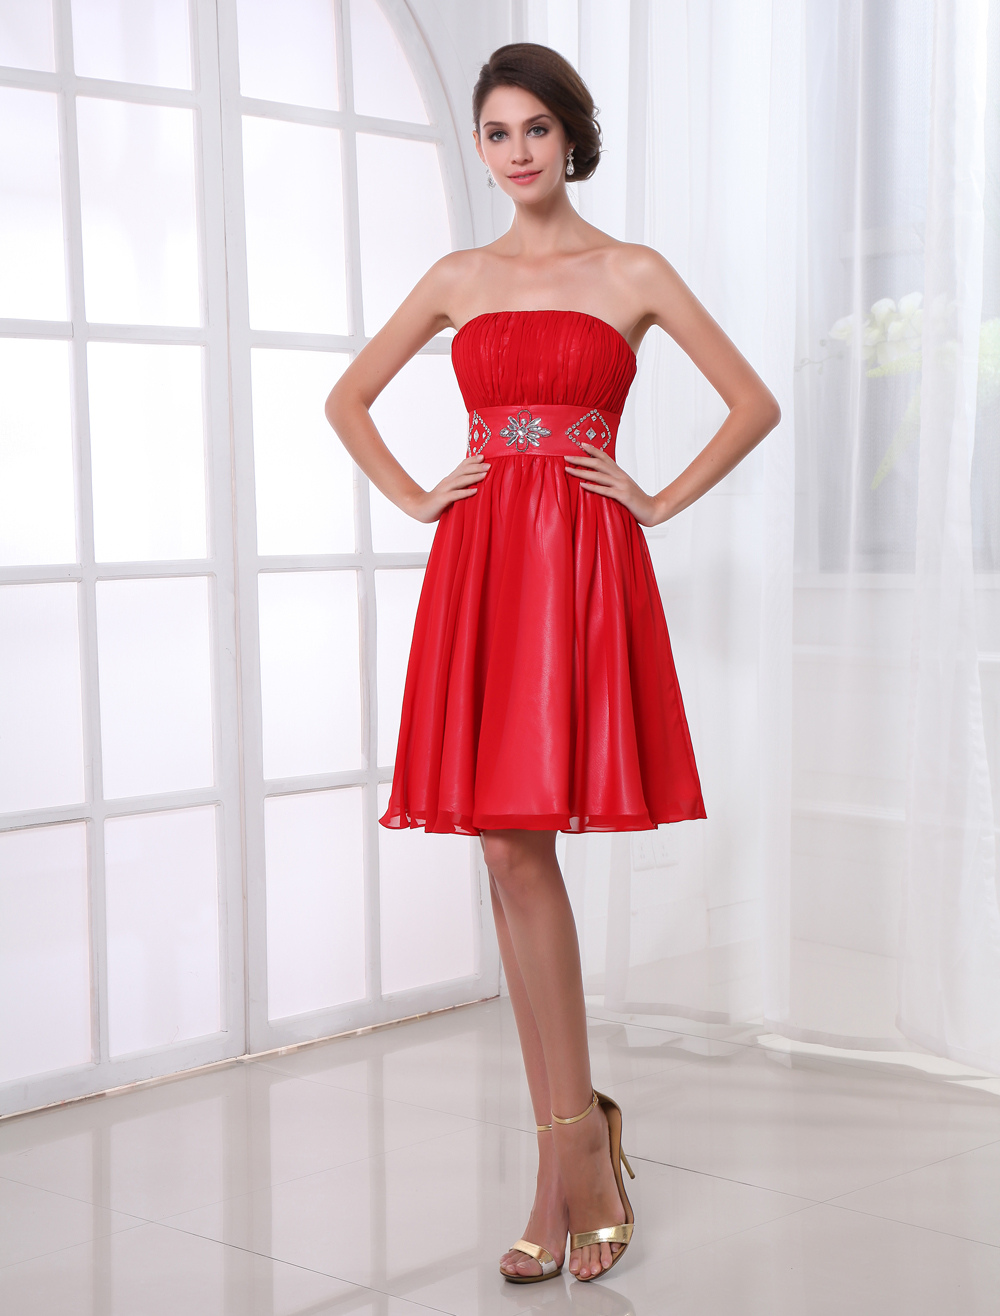 Red Chiffon Crystal Strapless Knee-Length Women's Cocktail Dress